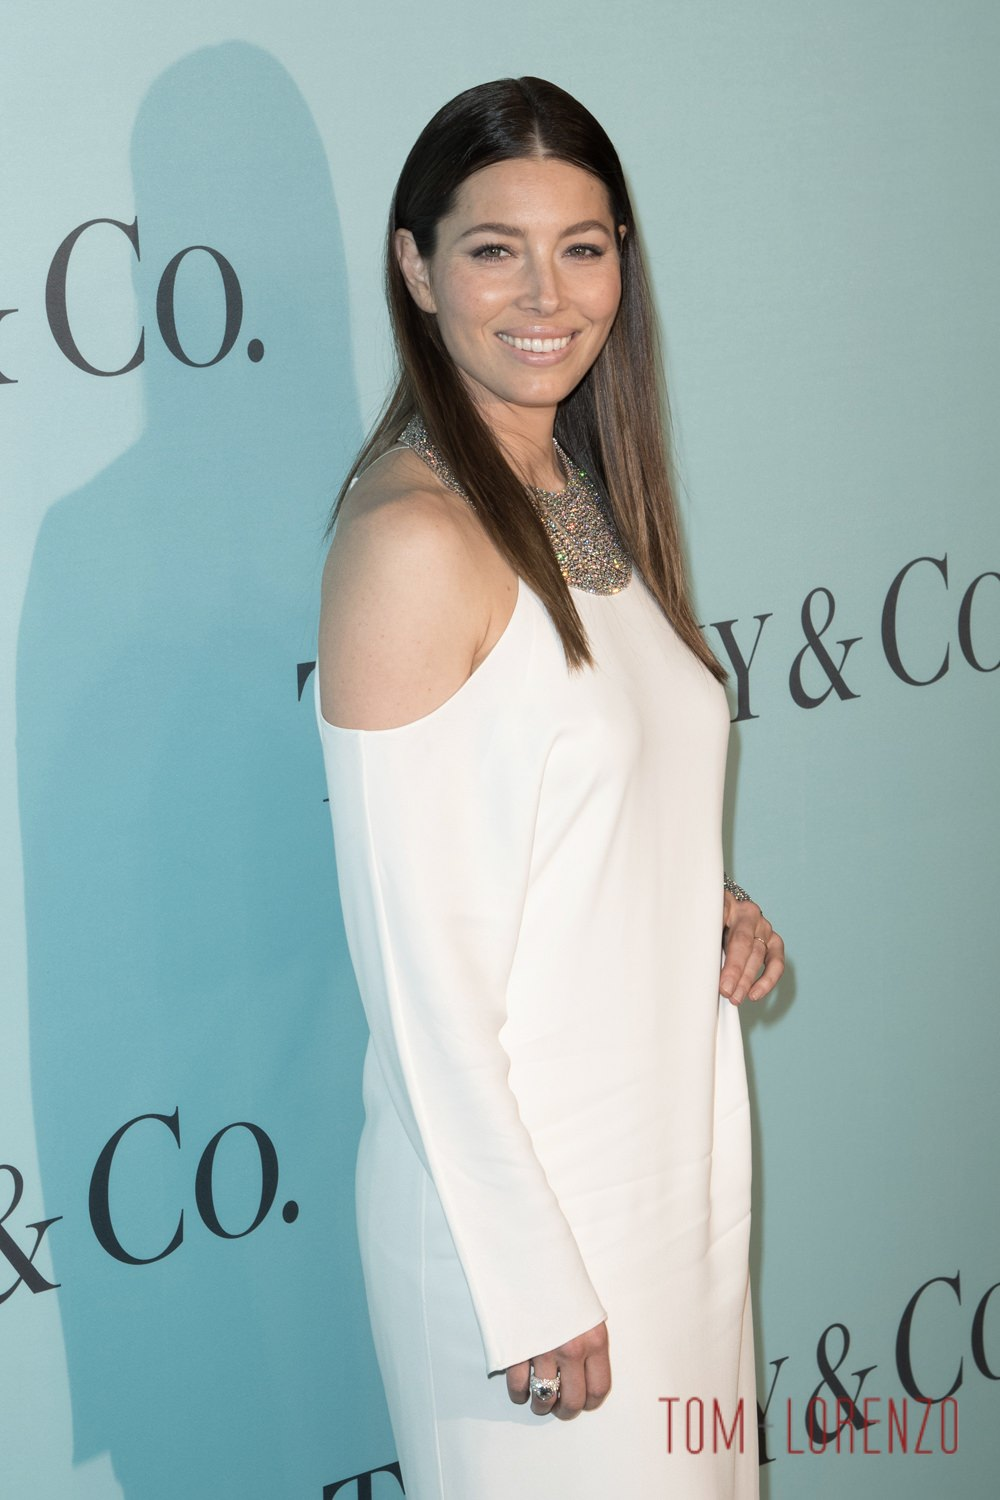 Jessica-Biel-Tiffany-Co-Blue-Book-Gala-Red-Carpet-Fashion-The-Row-Tom-Lorenzo-Site (1)